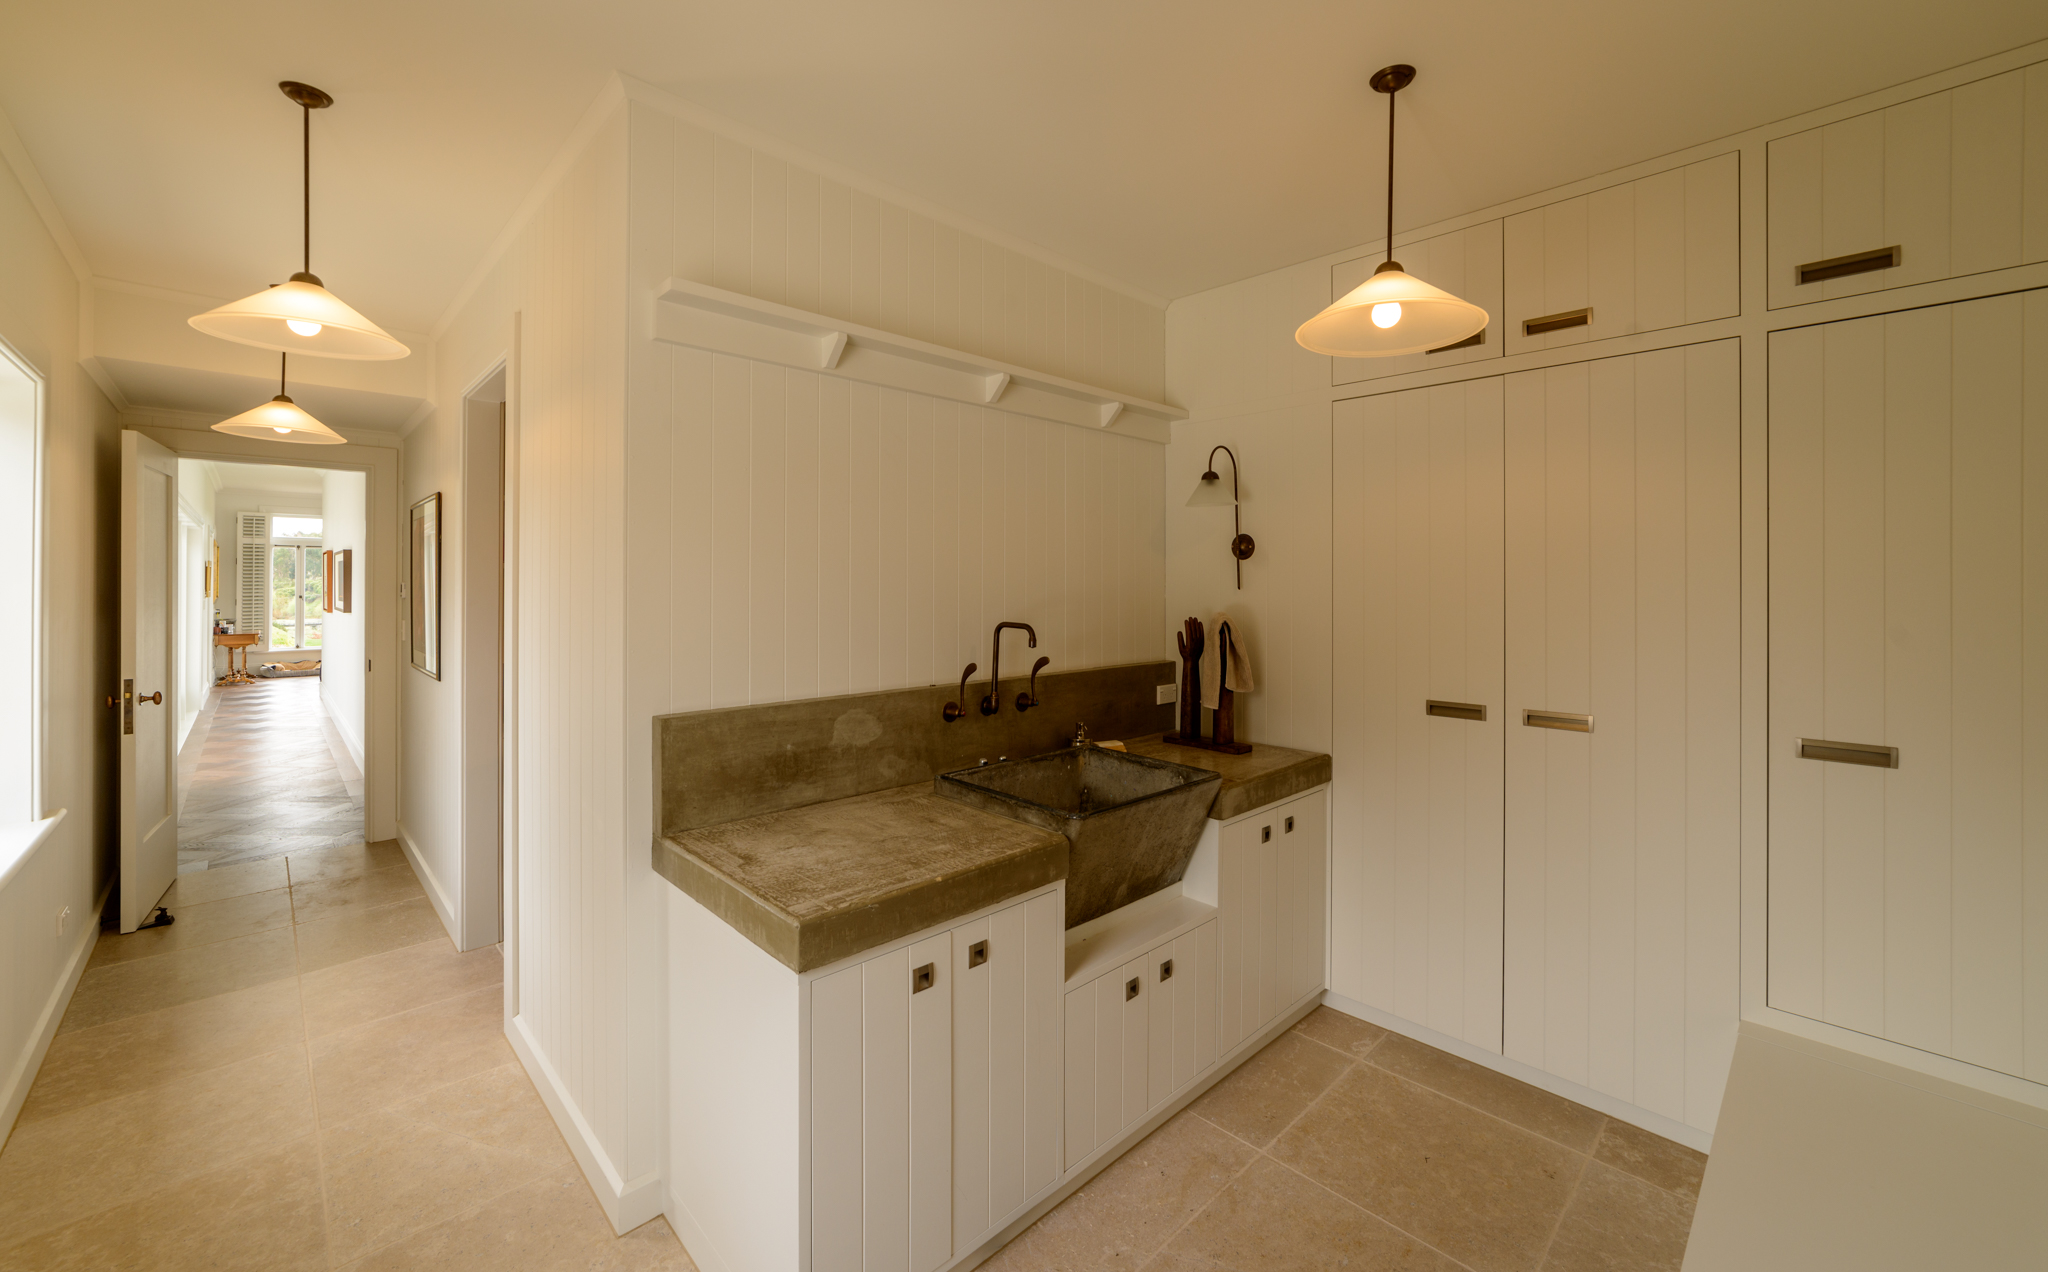 The 'mud room' features a recycled concrete tub, with recycled taps, set into a cast in-situ bench top.